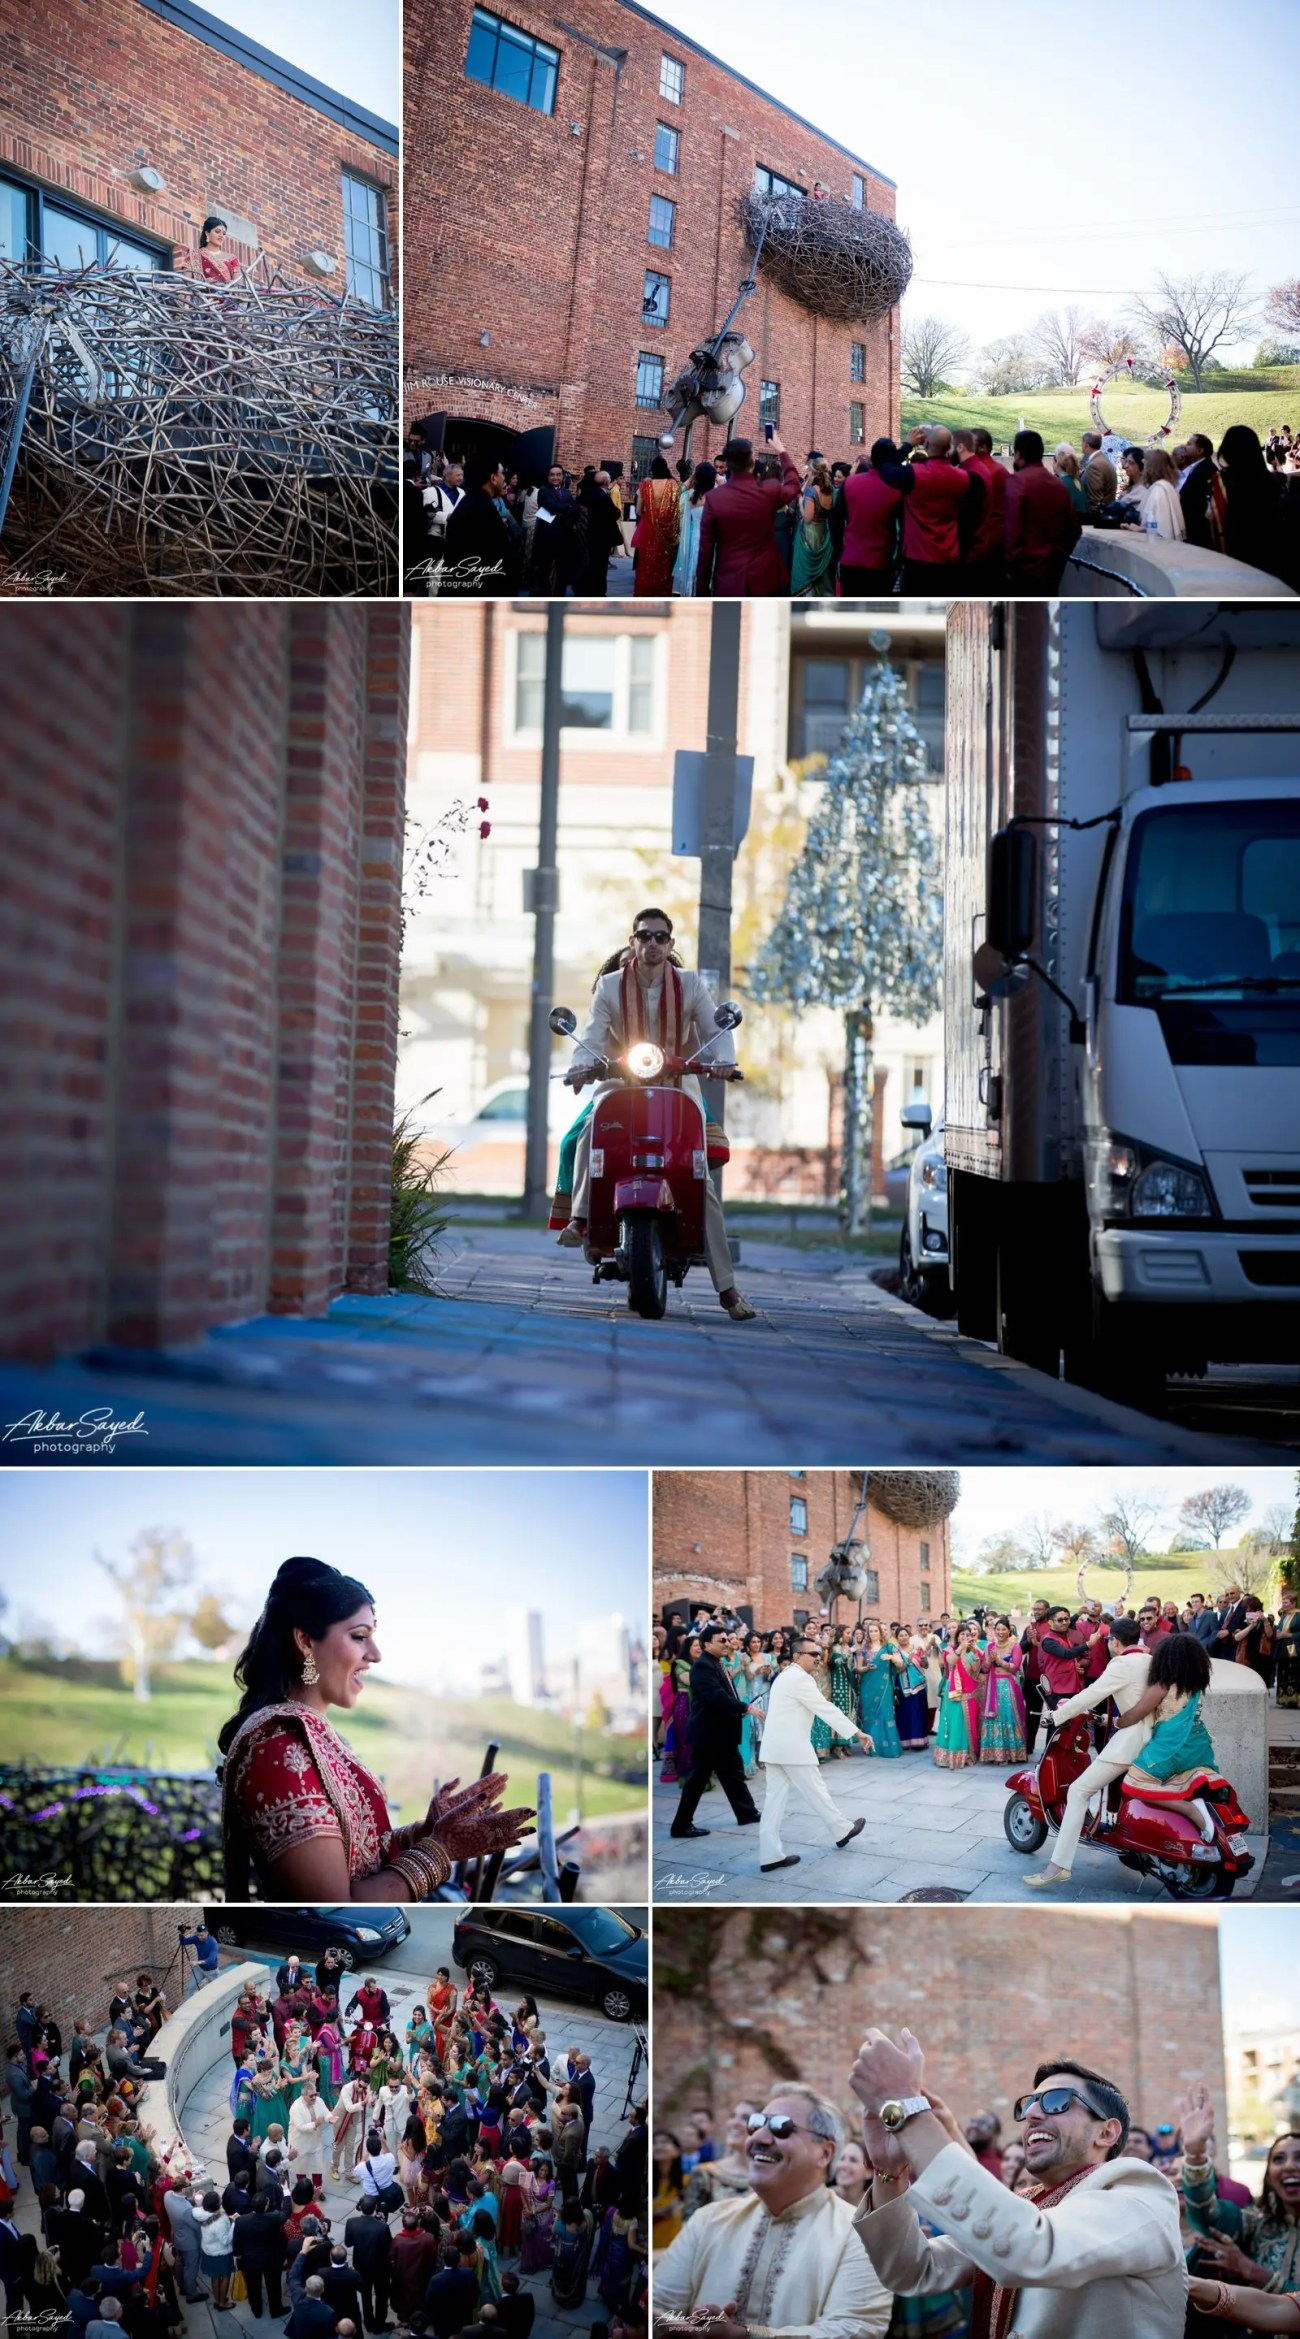 A photo collage of a Indian Bride and Iranian groom during their Baraat at the American Visionary Art Museum in Baltimore, Maryland.